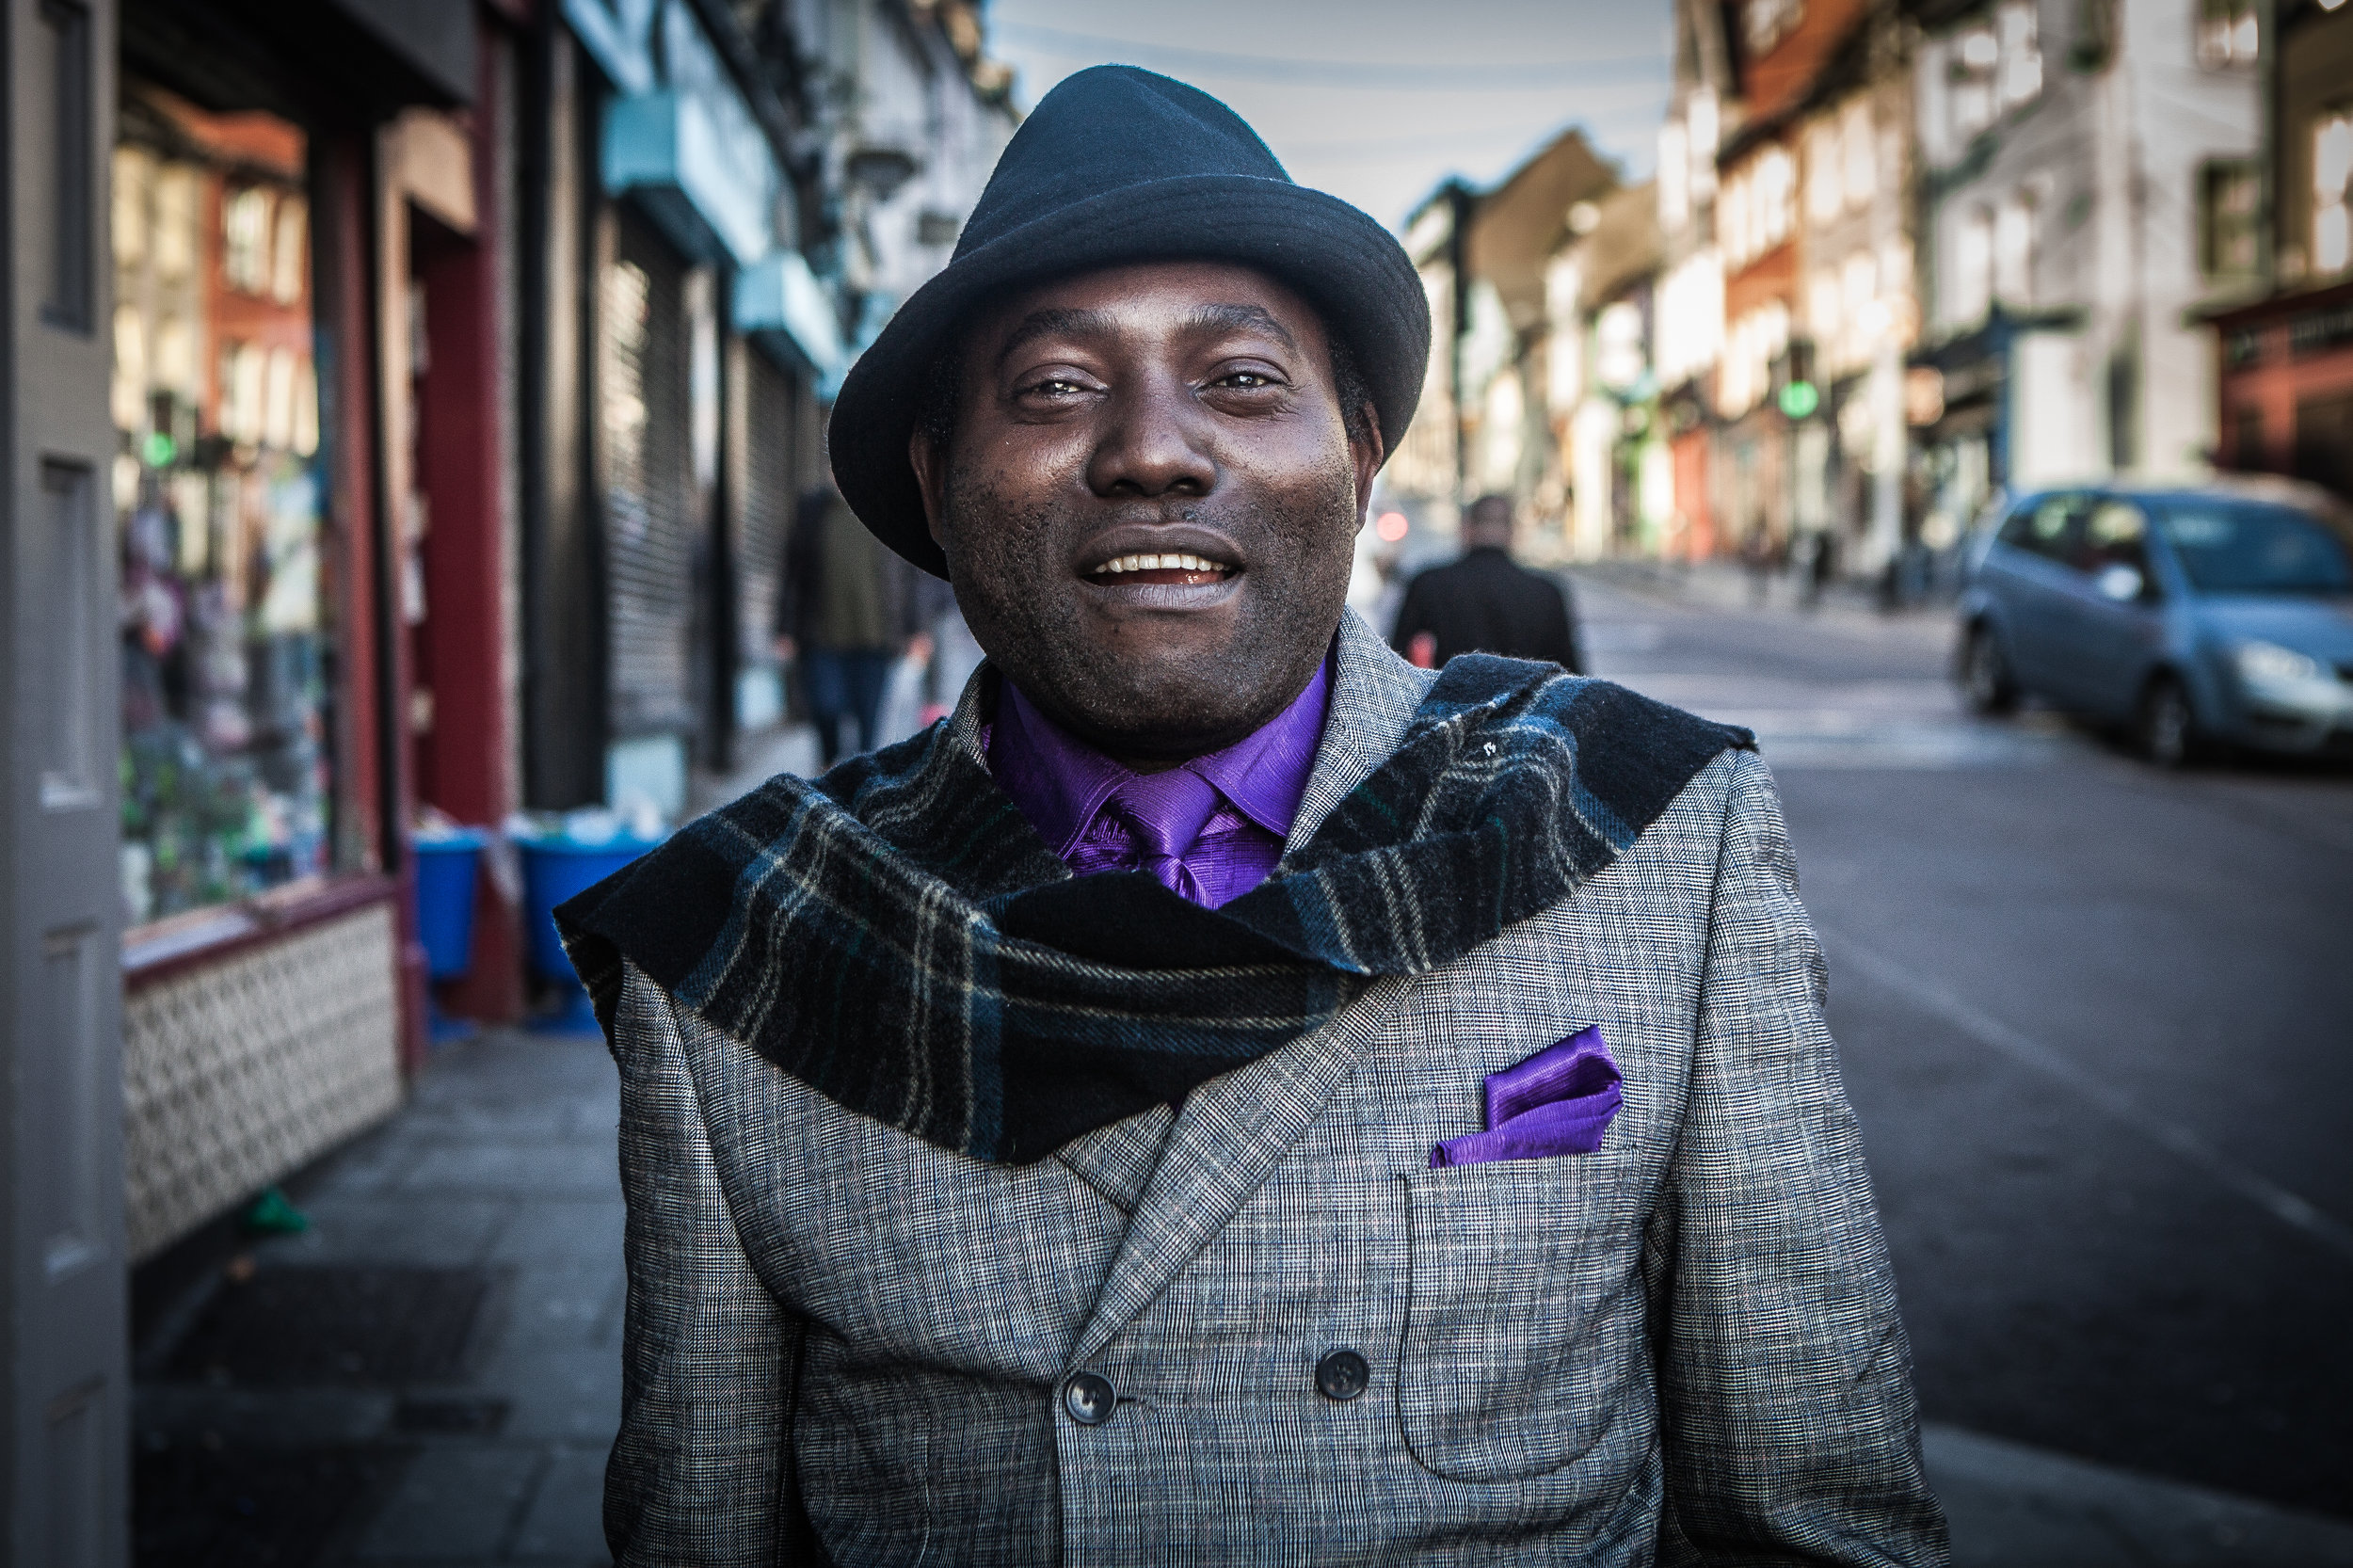 I met Daniel, originally from Congo as he came out of church service on Barrack street.  Such a sharply dressed man!  He is one of those characters that will break out into a huge smile or laugh at the slightest hint, maybe he was still buzzing after his weekly spiritual fix.  We discussed the concept of the well dressed African 'Sapeur' he claimed not to be one but I convinced him he must be.   We chatted about the fashion sense of the Irish male and he told me they were too stingy to dress up well and preferred to spend their money on other things.  I guess we all generalise of sorts... but he may have a point, after all I admit I was decked out in a pair of old runners, jeans, an old coat and particularly crappy wooly hat...